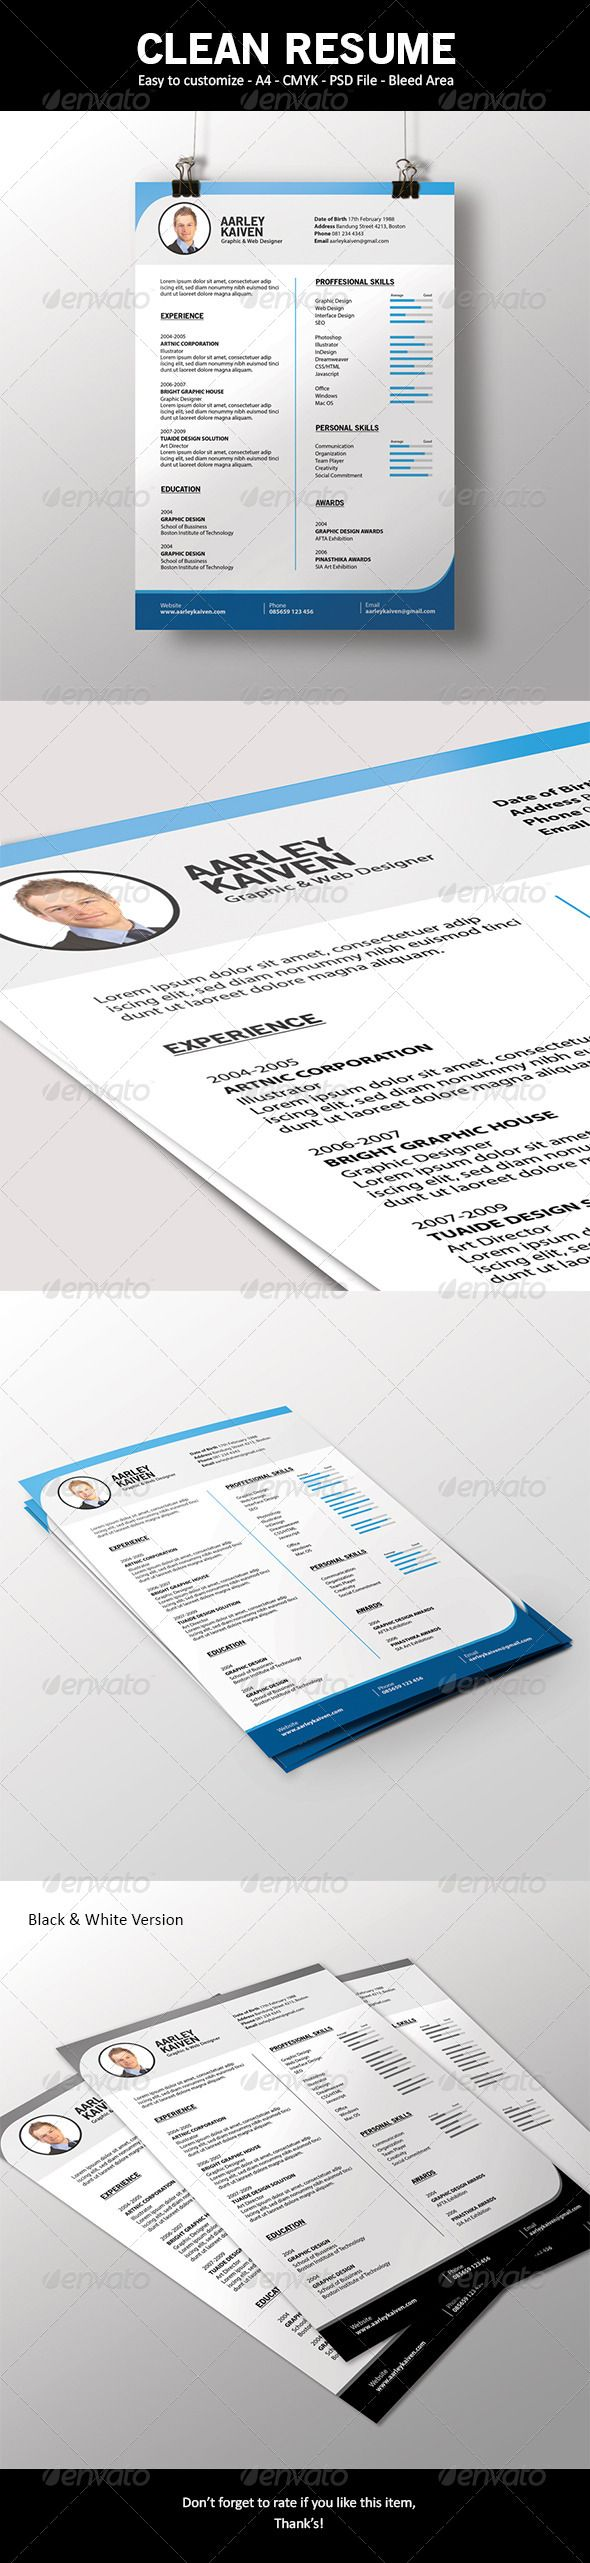 39 best images about photoshop resume templates on pinterest